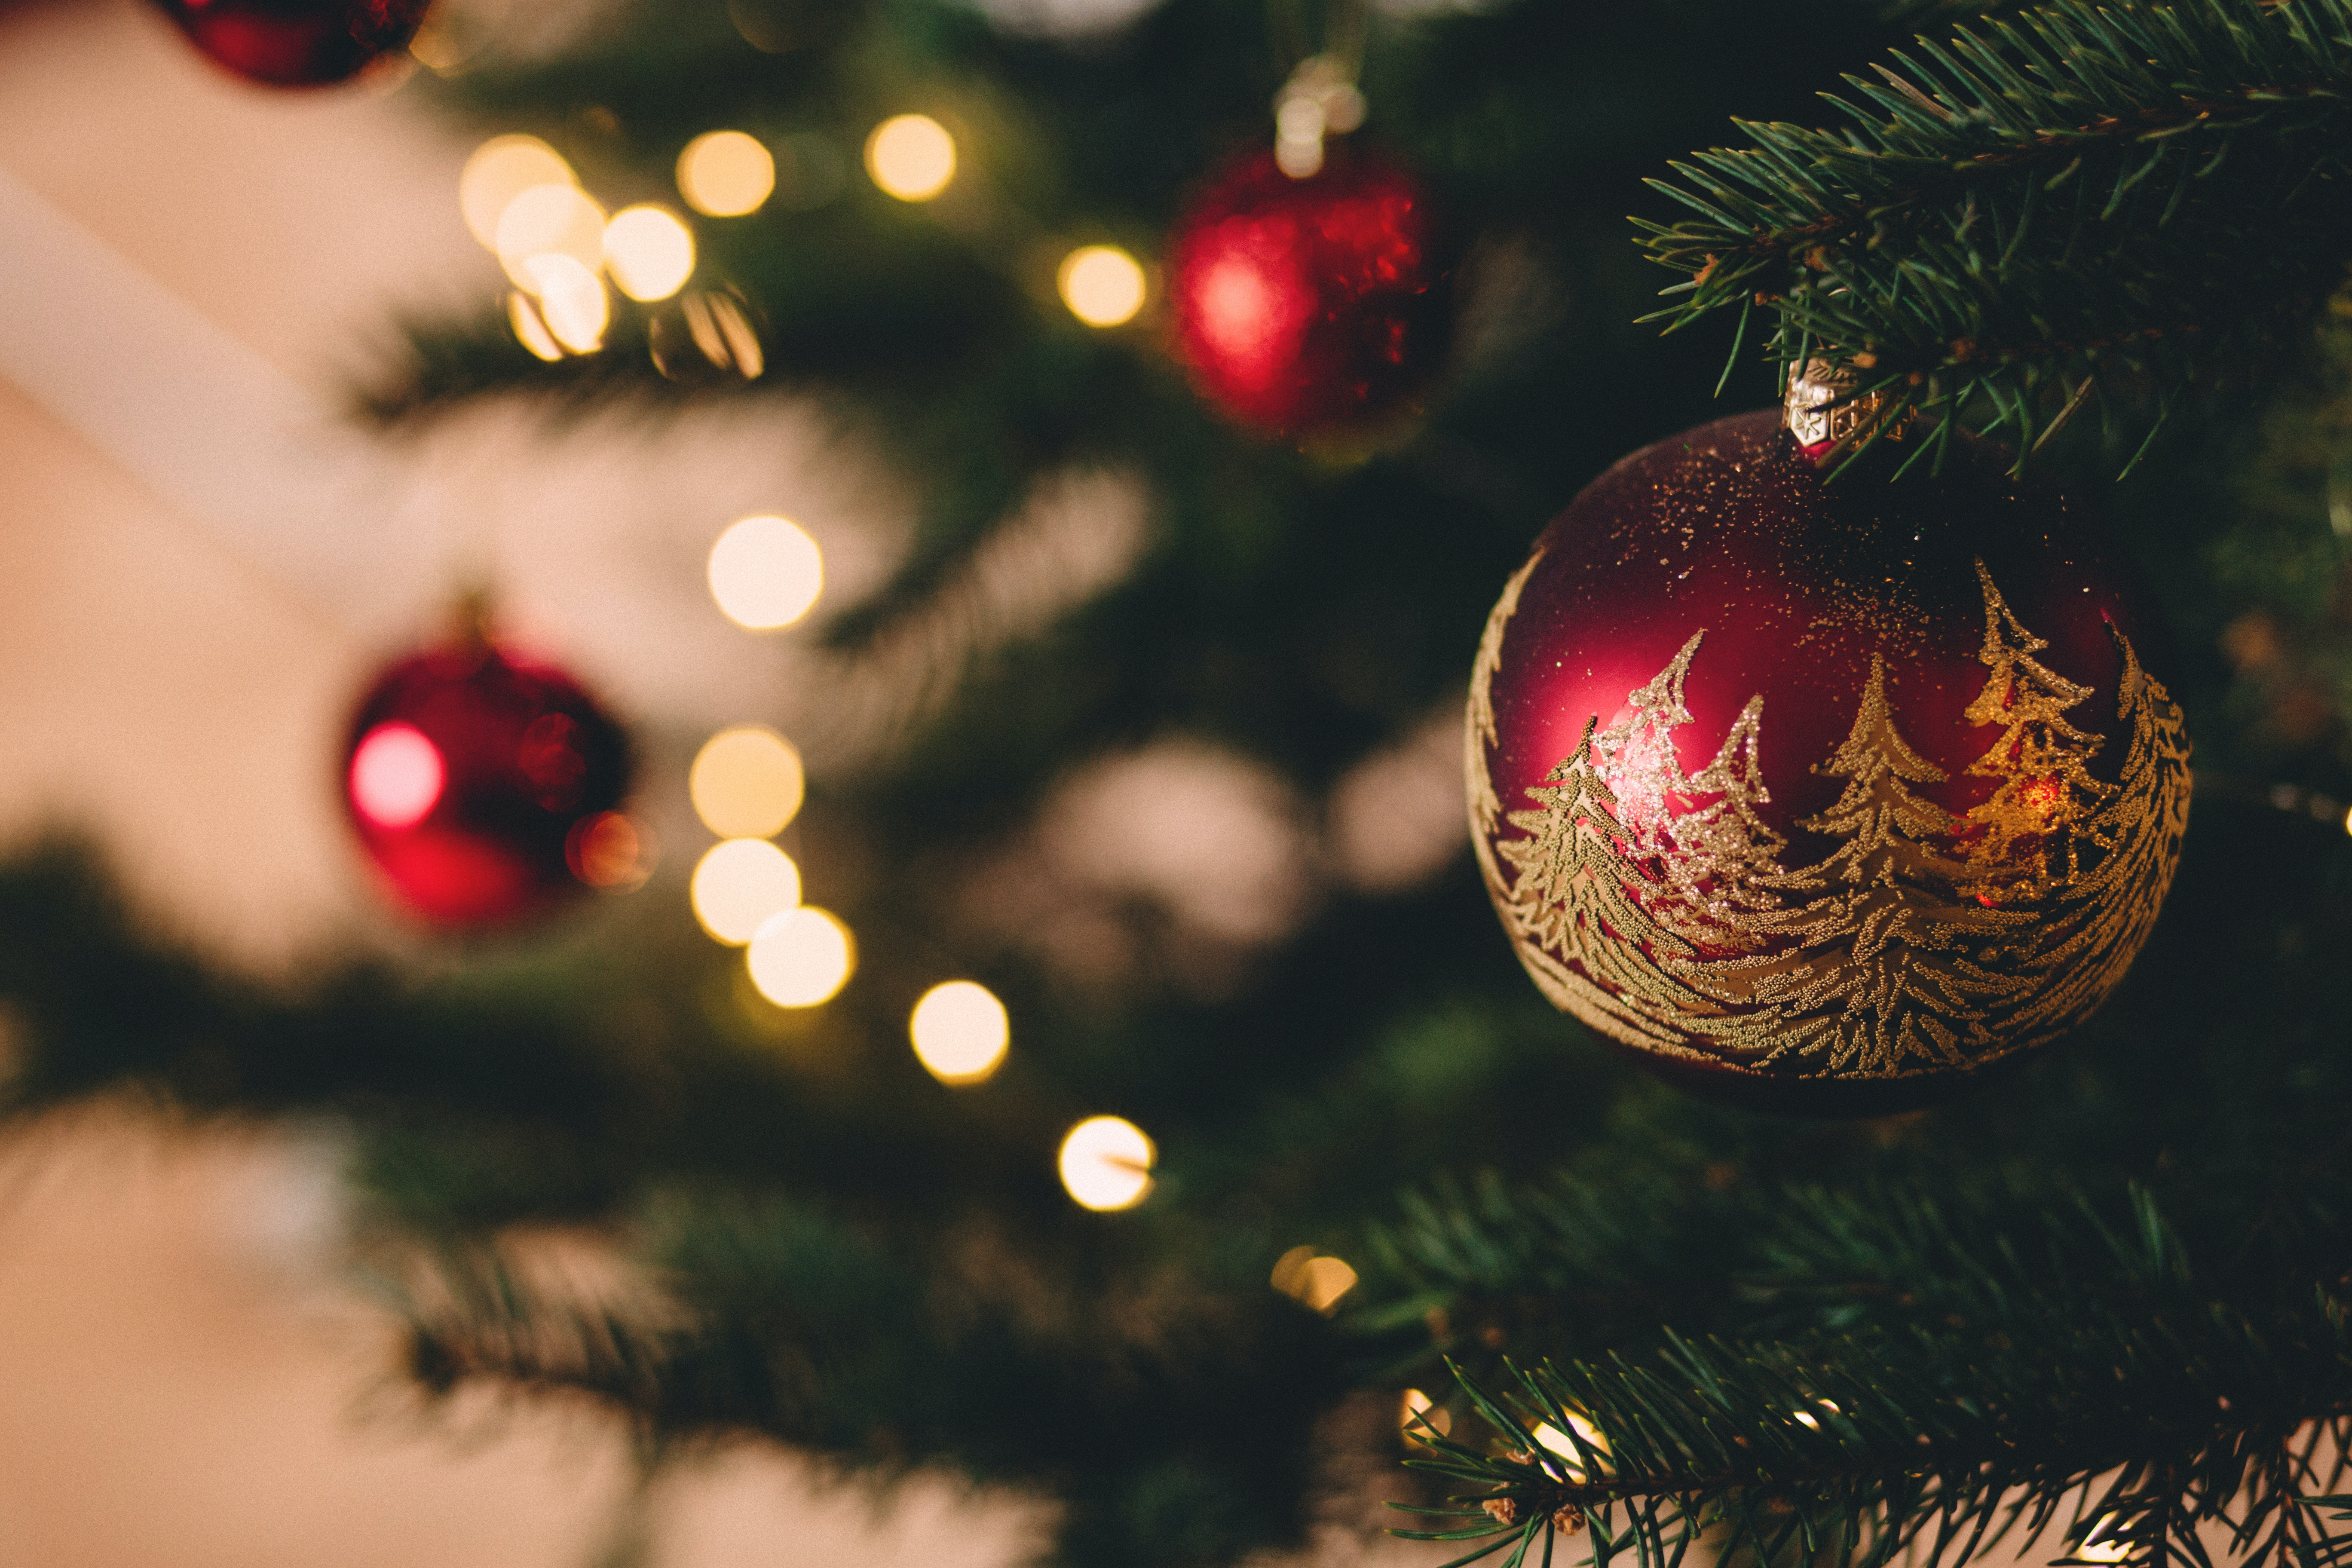 Christmas Pics.Christmas Tree With Baubles Free Stock Photo